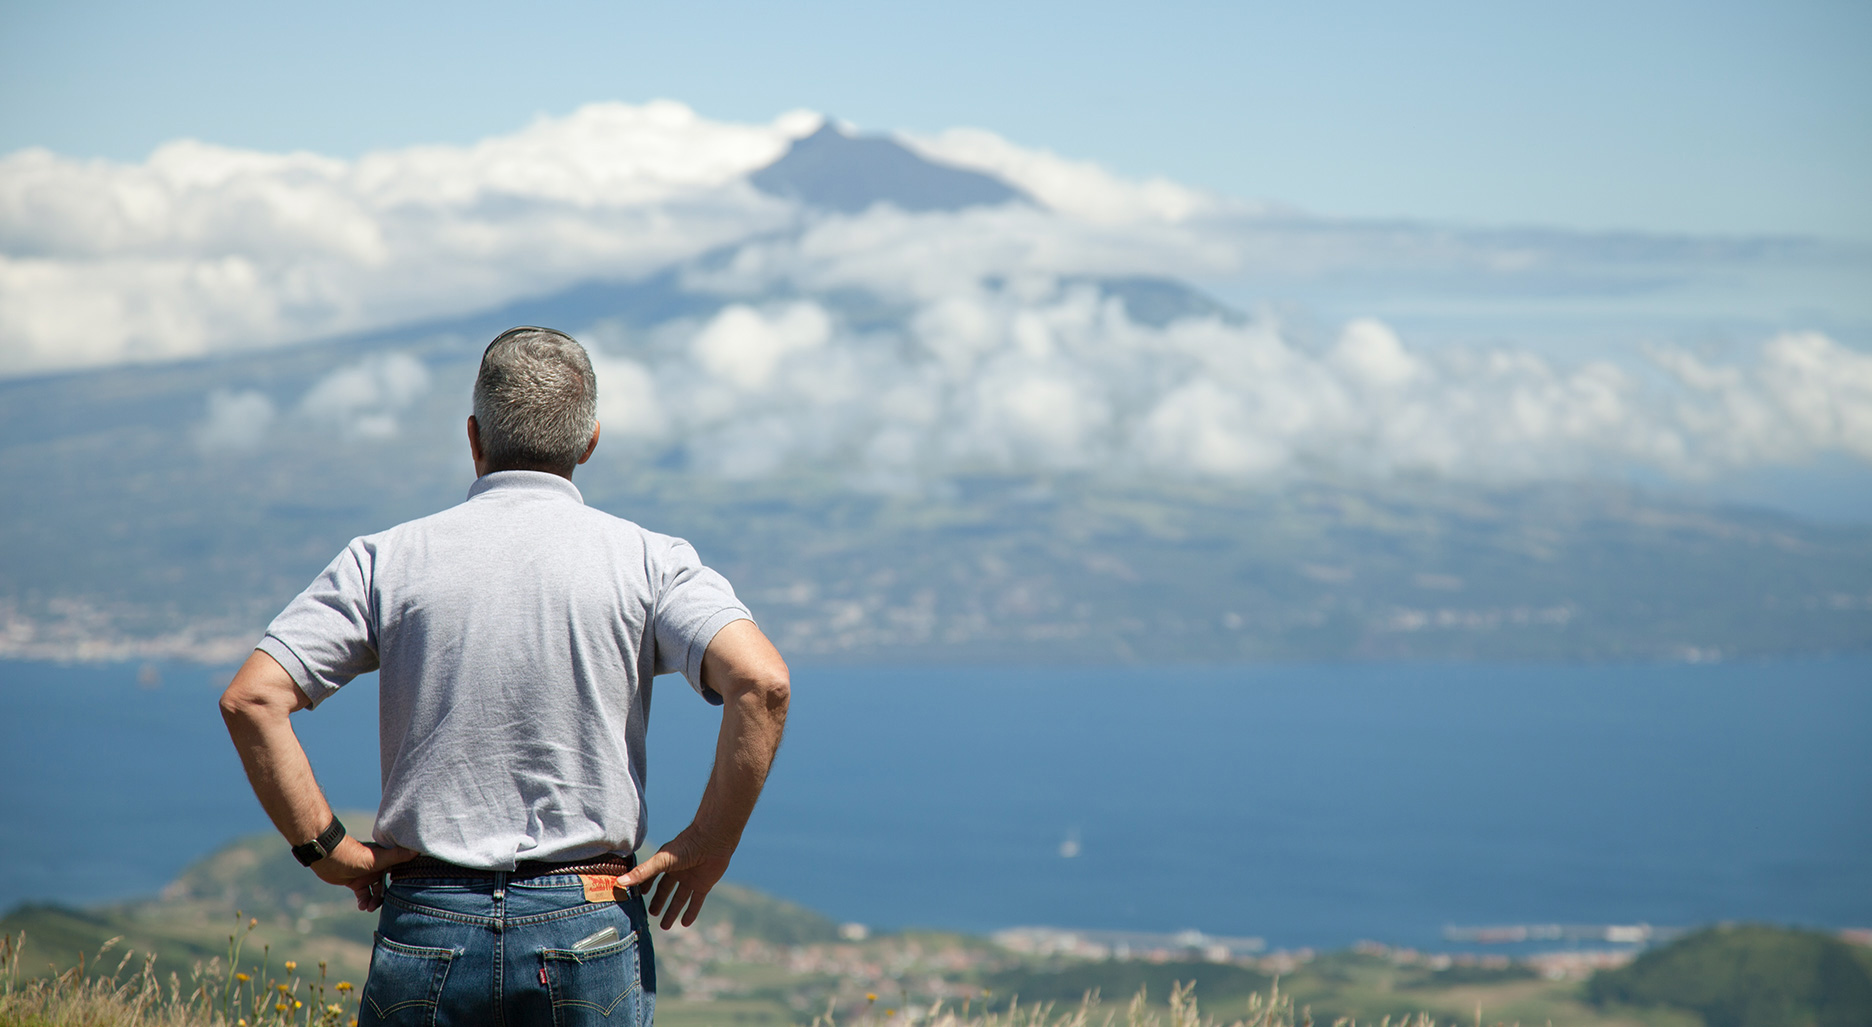 Customer enjoying Pico mountain view in the background. Faial half day includes the main attractions